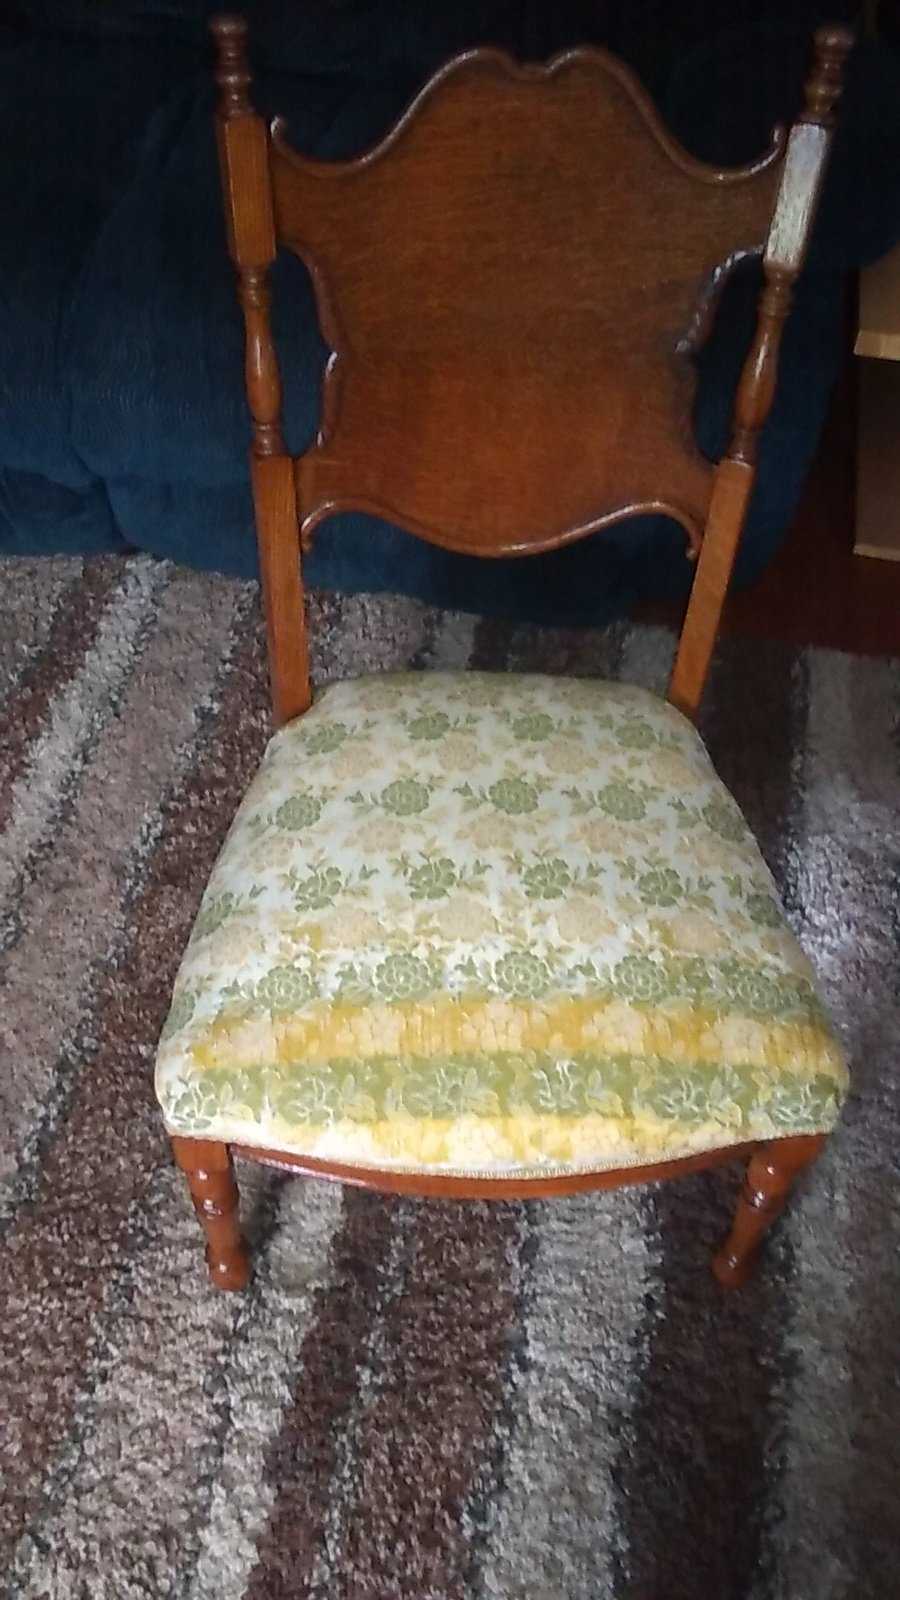 set of 8 dining chairs folding chair ireland carved wooden with wheels on front legs | my antique furniture collection